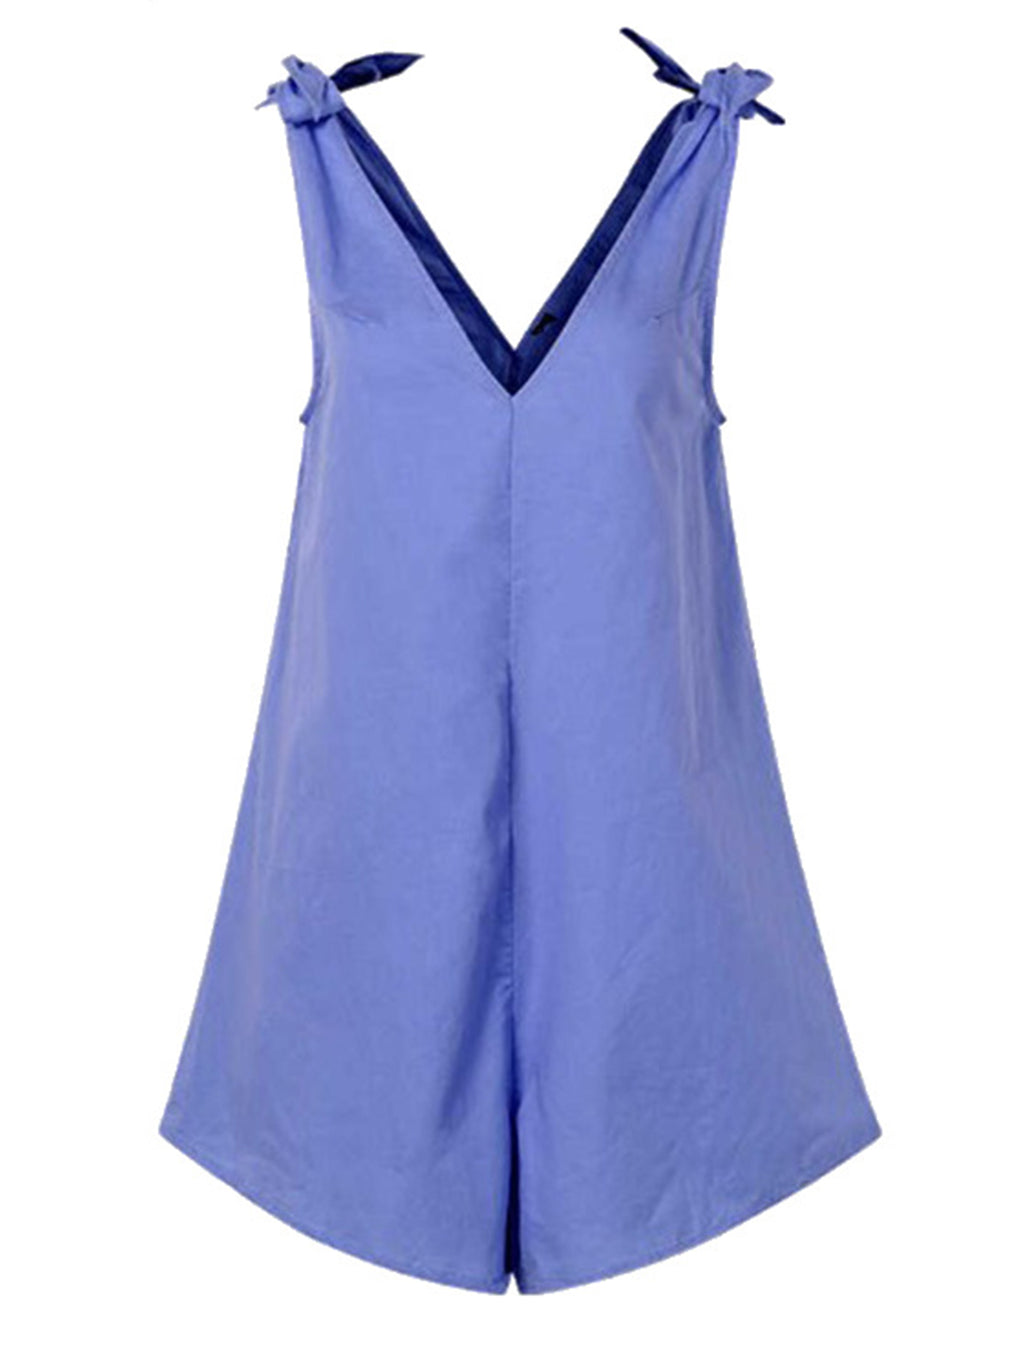 Solid Cotton Tied Shoulder-Strap Mini Jumpsuits